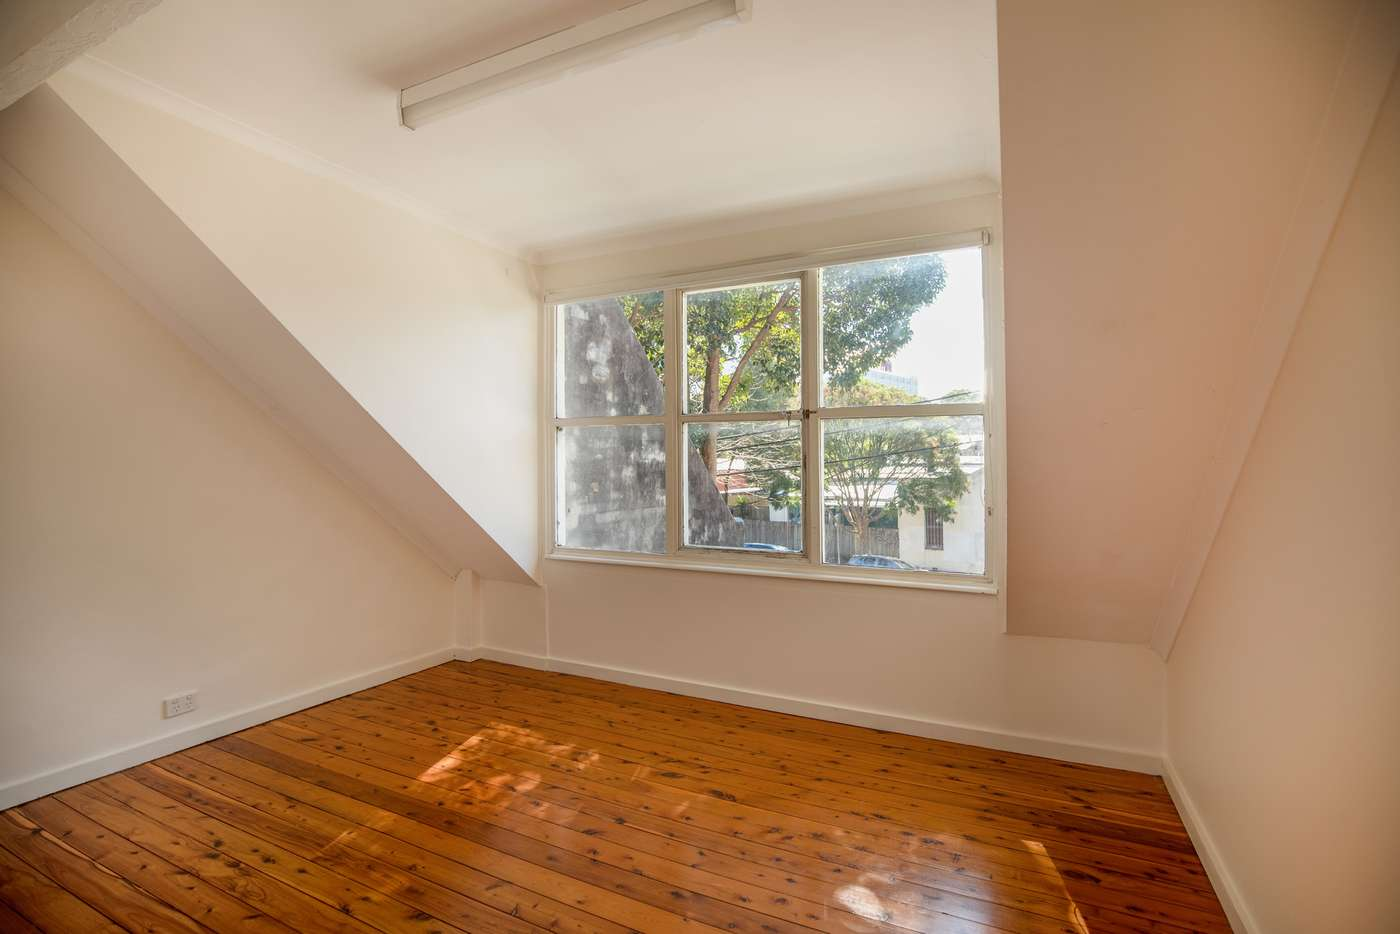 Seventh view of Homely house listing, 3 Cooper Street, Redfern NSW 2016